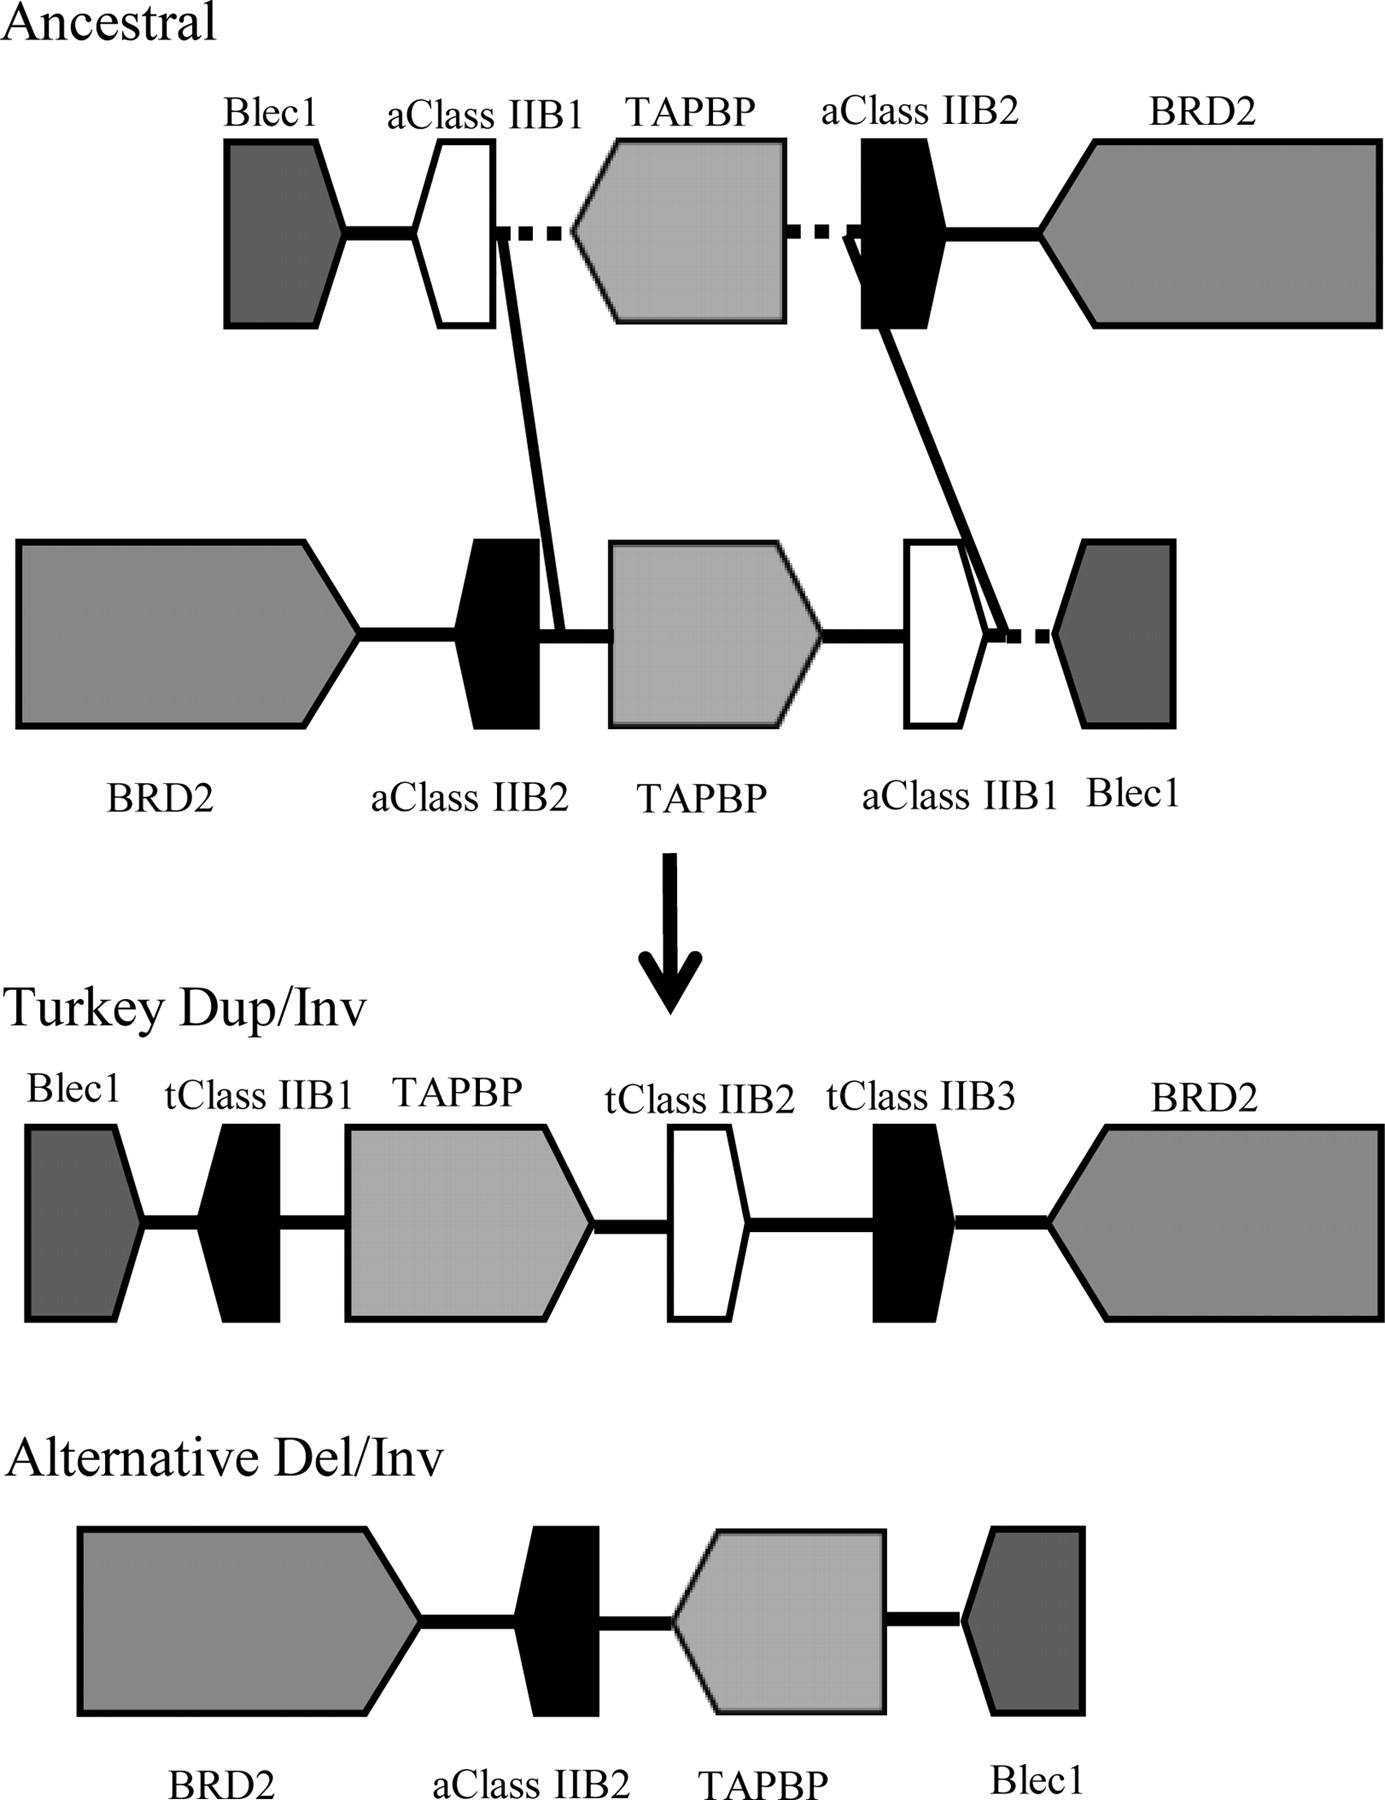 defining the turkey mhc sequence and genes of the b locus the